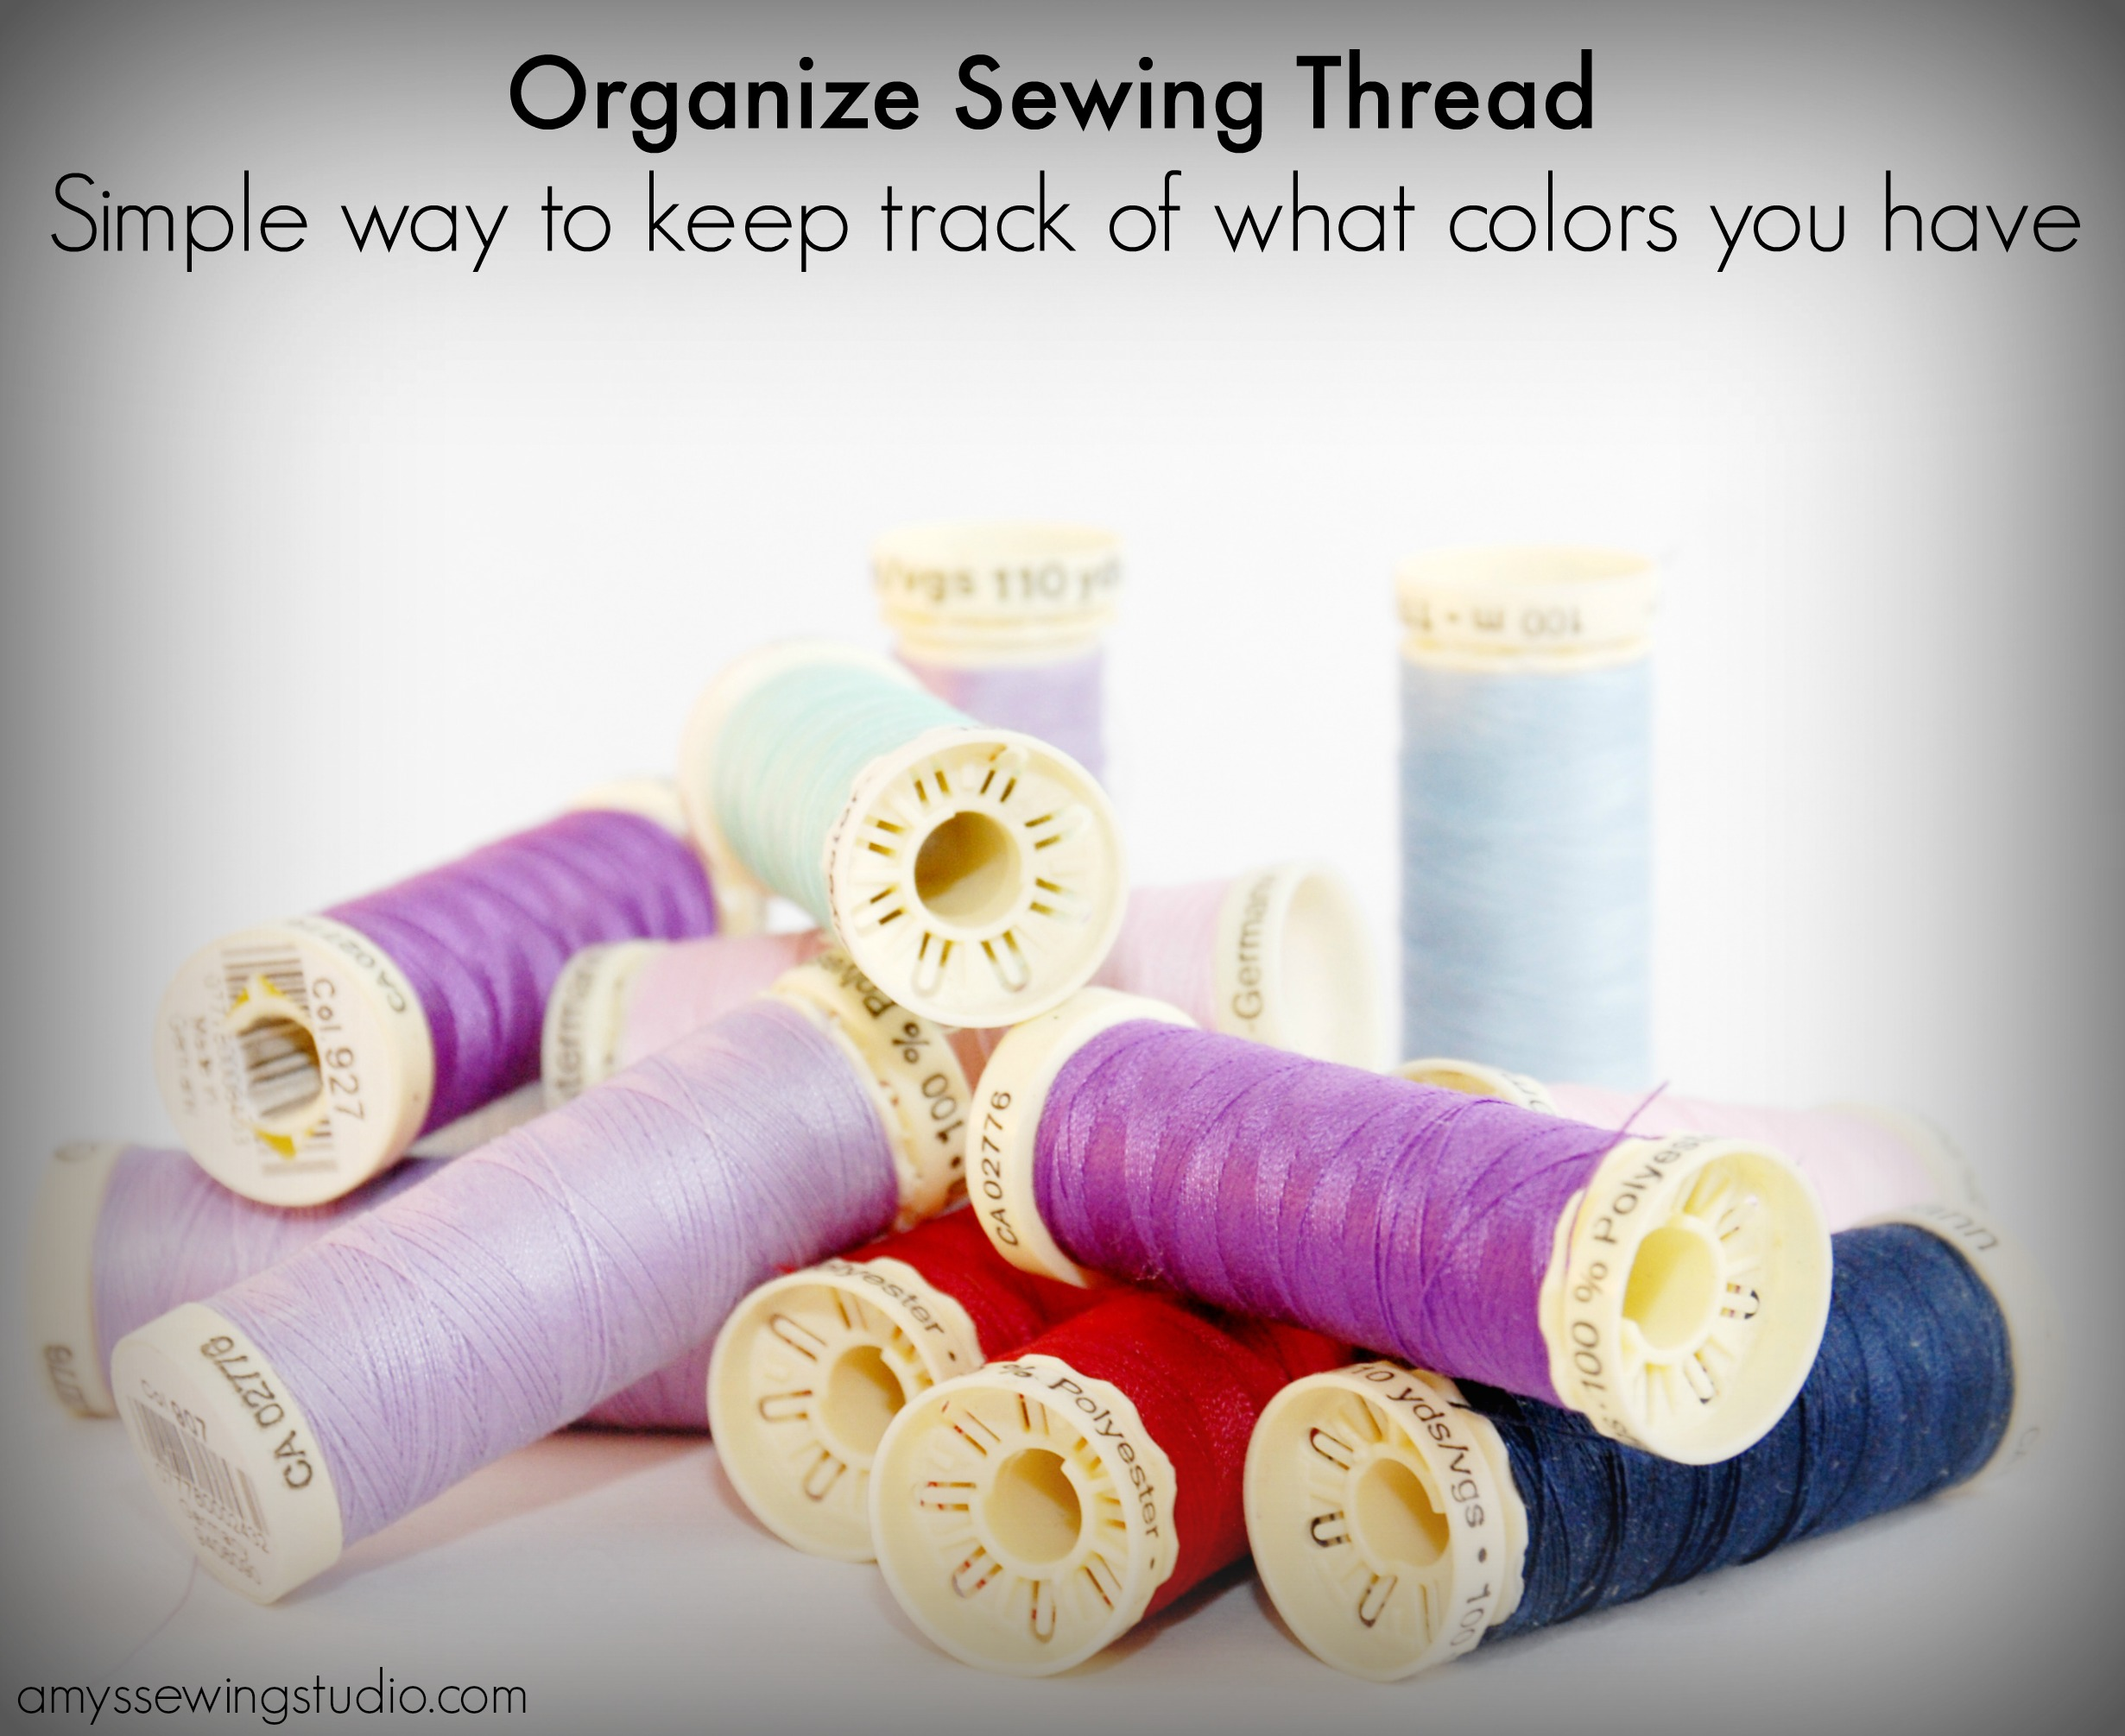 Organize Sewing Thread A Simple Way To Keep Track Of What Colors You Have